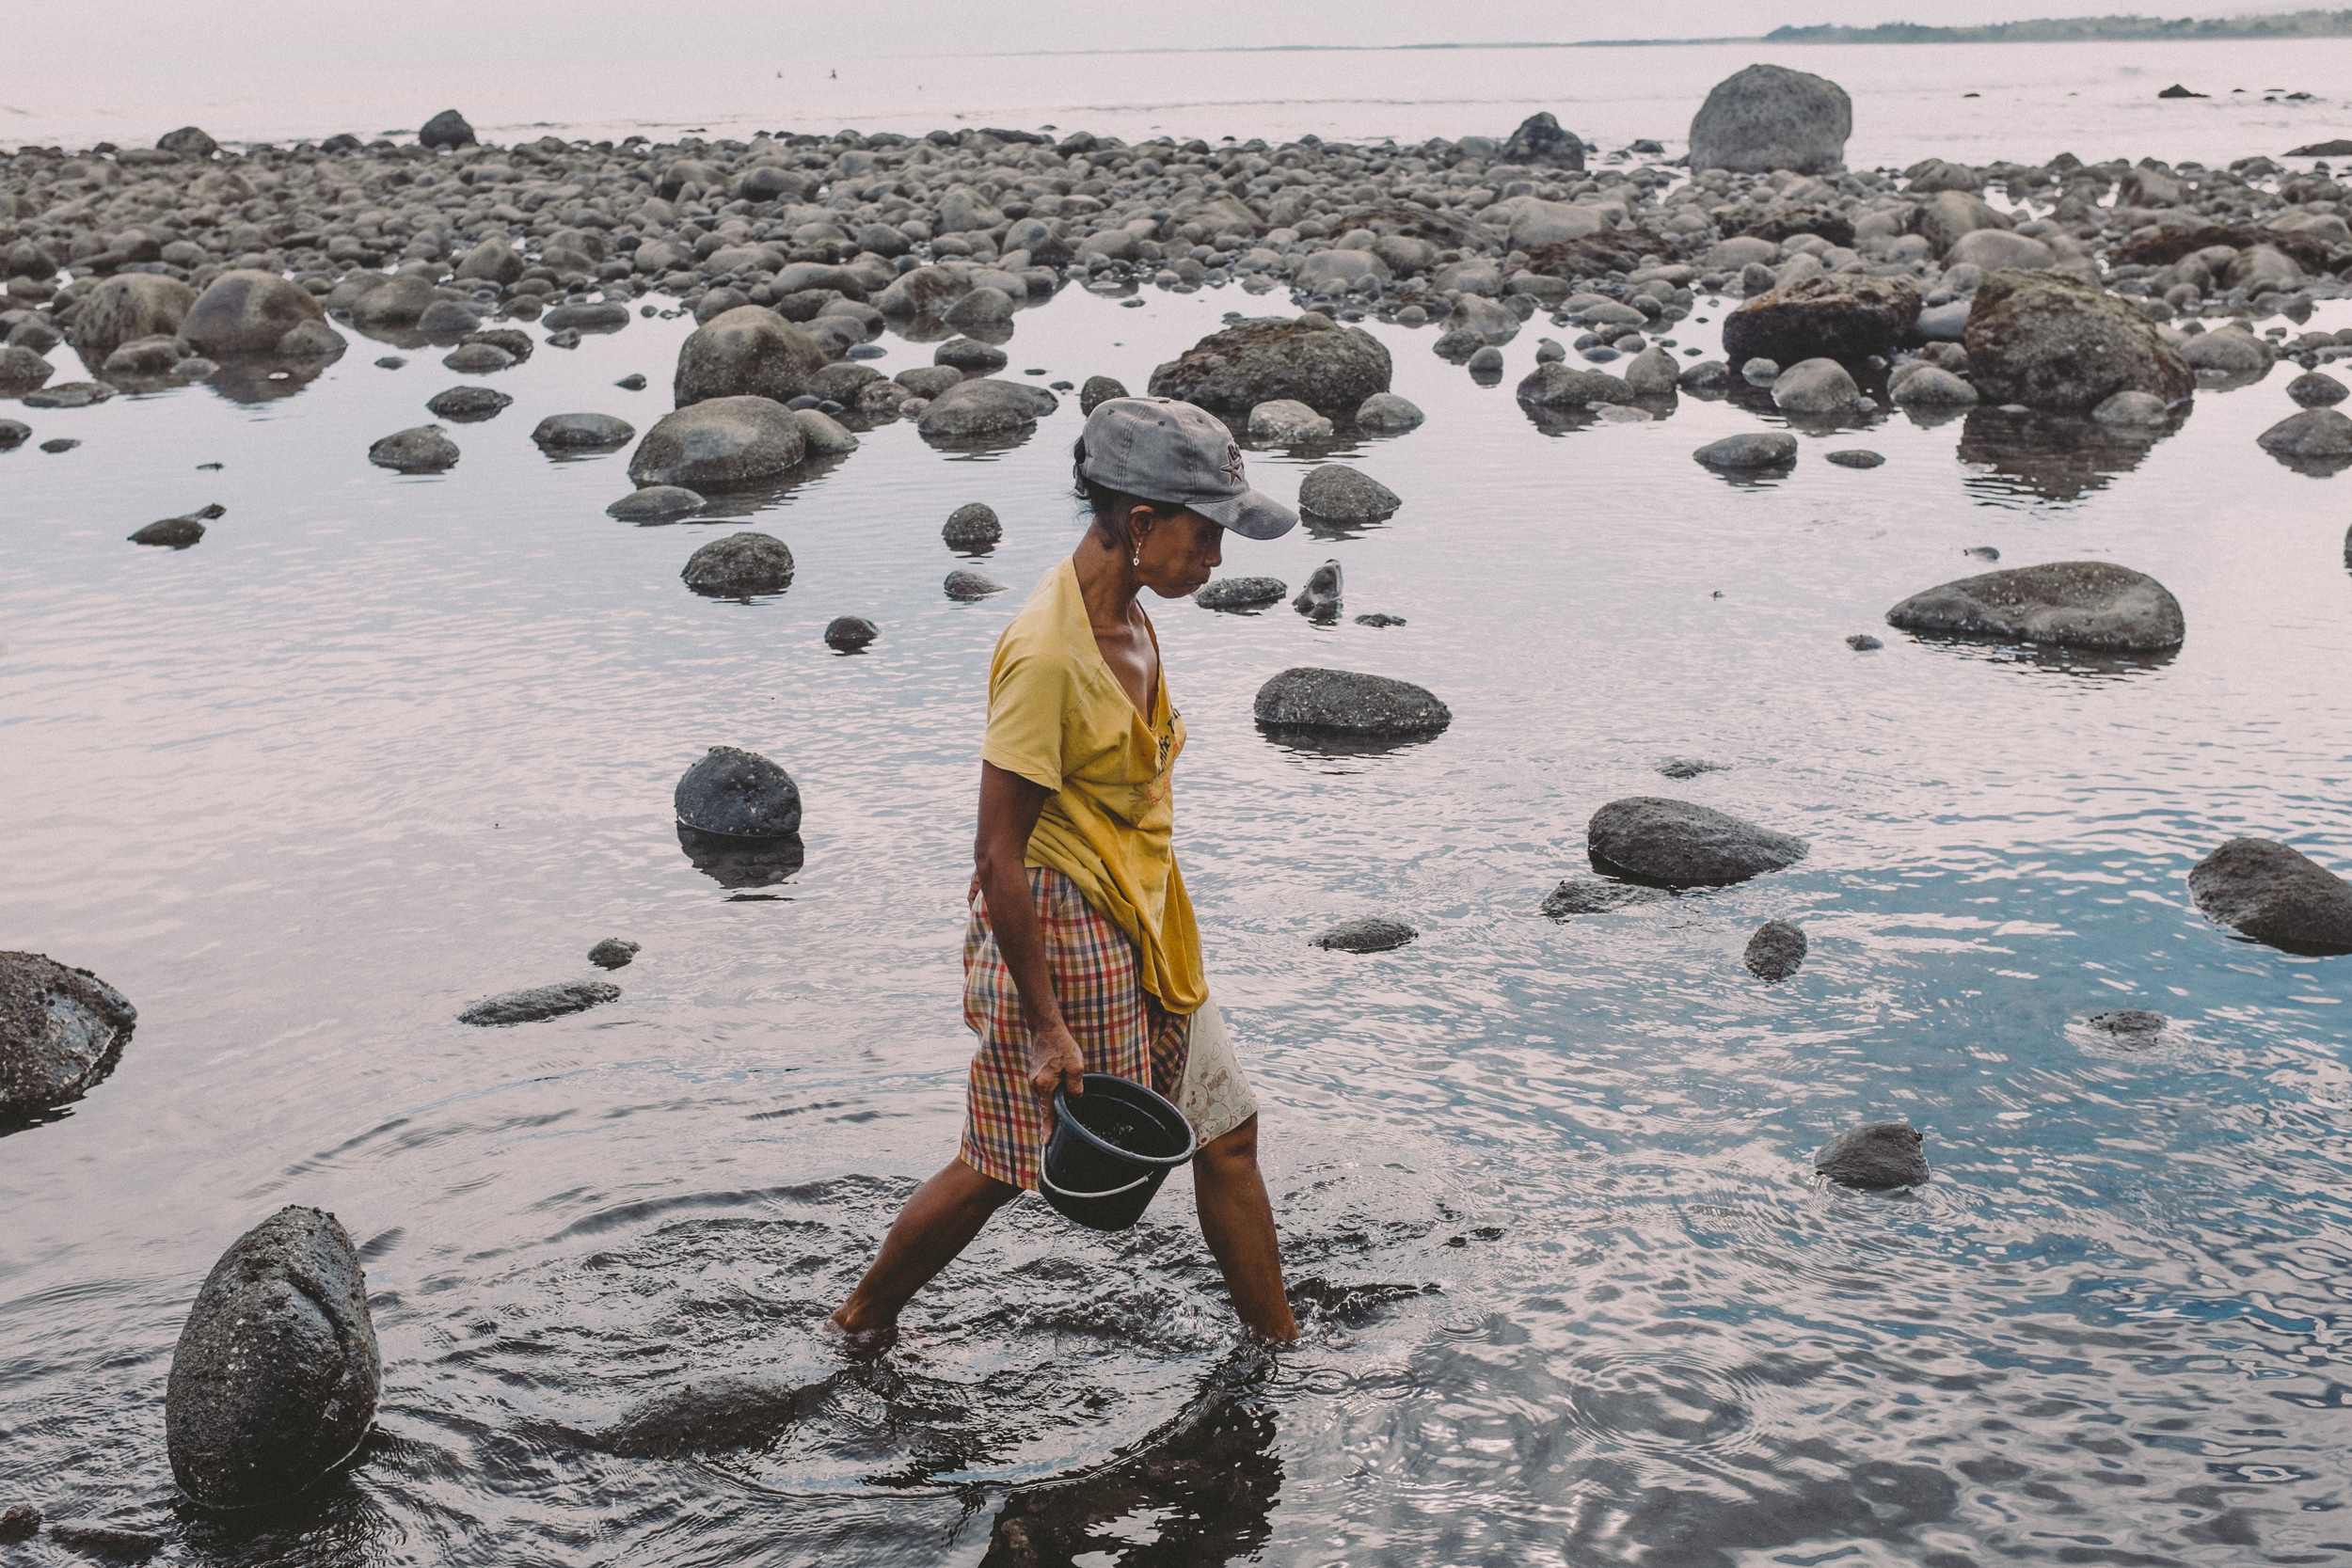 Bali_Indonesia_photo_journalism_shellfish_collecting_global_eyes_media_012.jpg